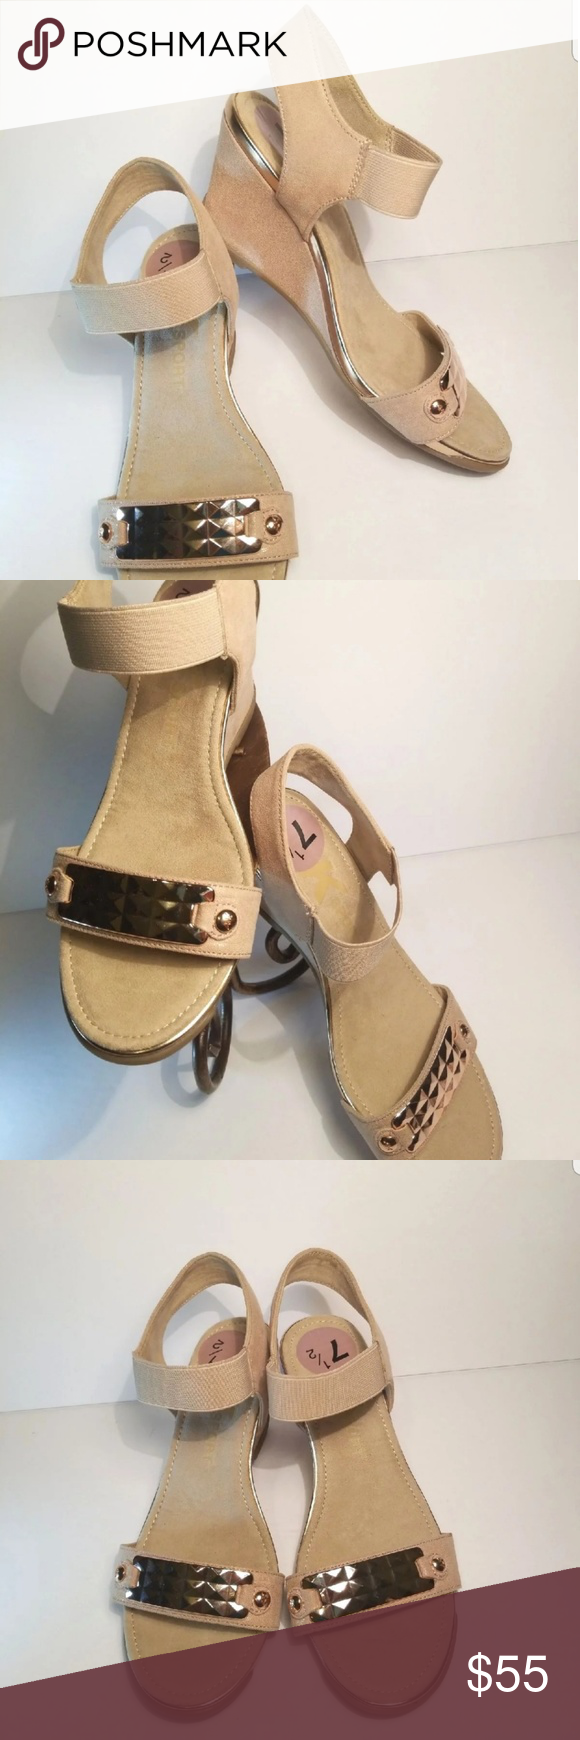 7cdfedfa02 Ann Klein Sport Sandal Super comfortable Brand New without tags AK Sport  Latasha comfort wedge sandals Size 7.5 Color: light natural Wedge heel: 3